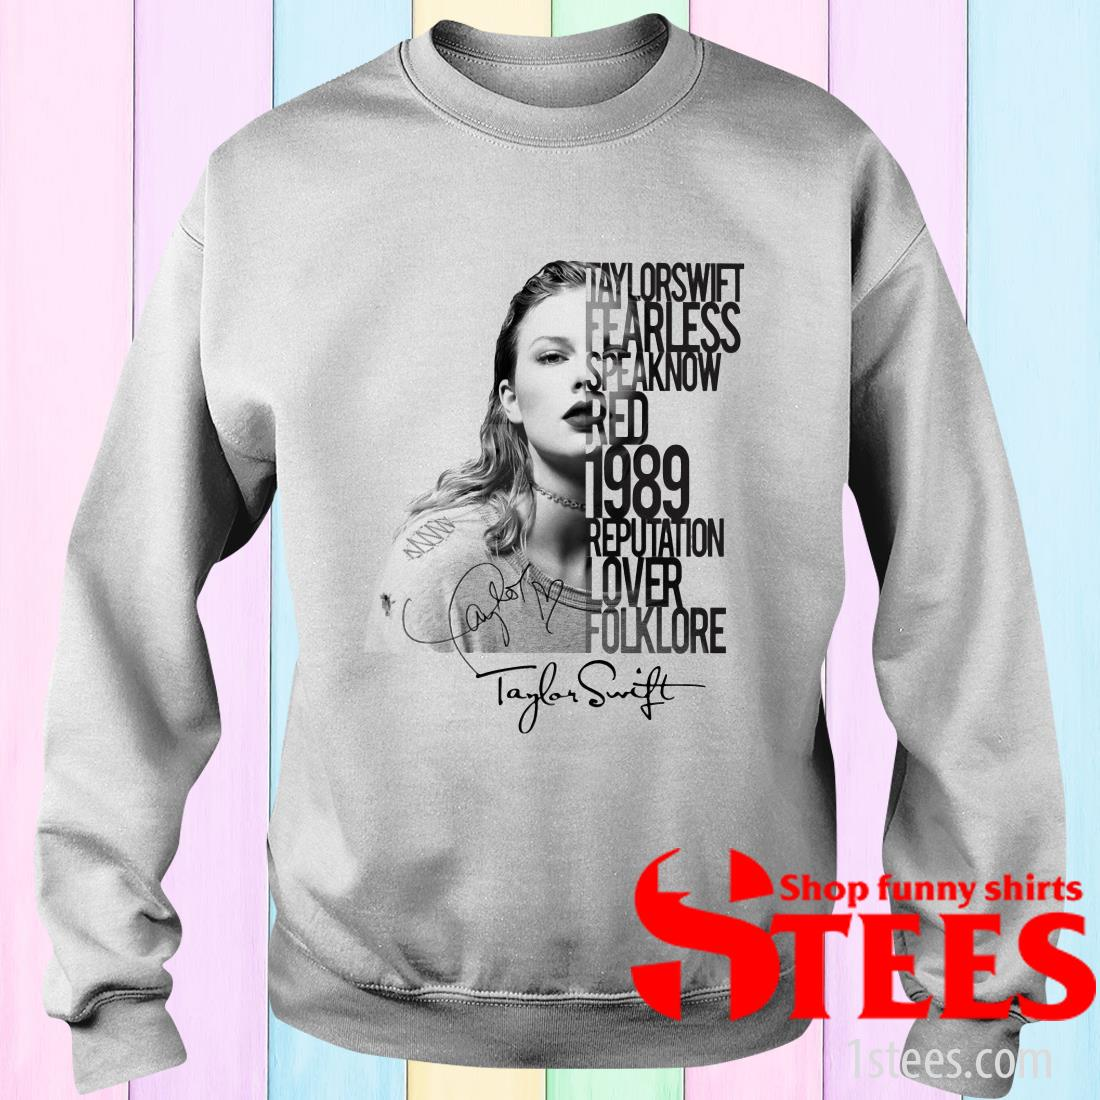 Taylor Swift Fearless Speak Now Red 1989 Reputation Lover Signature T-Shirt